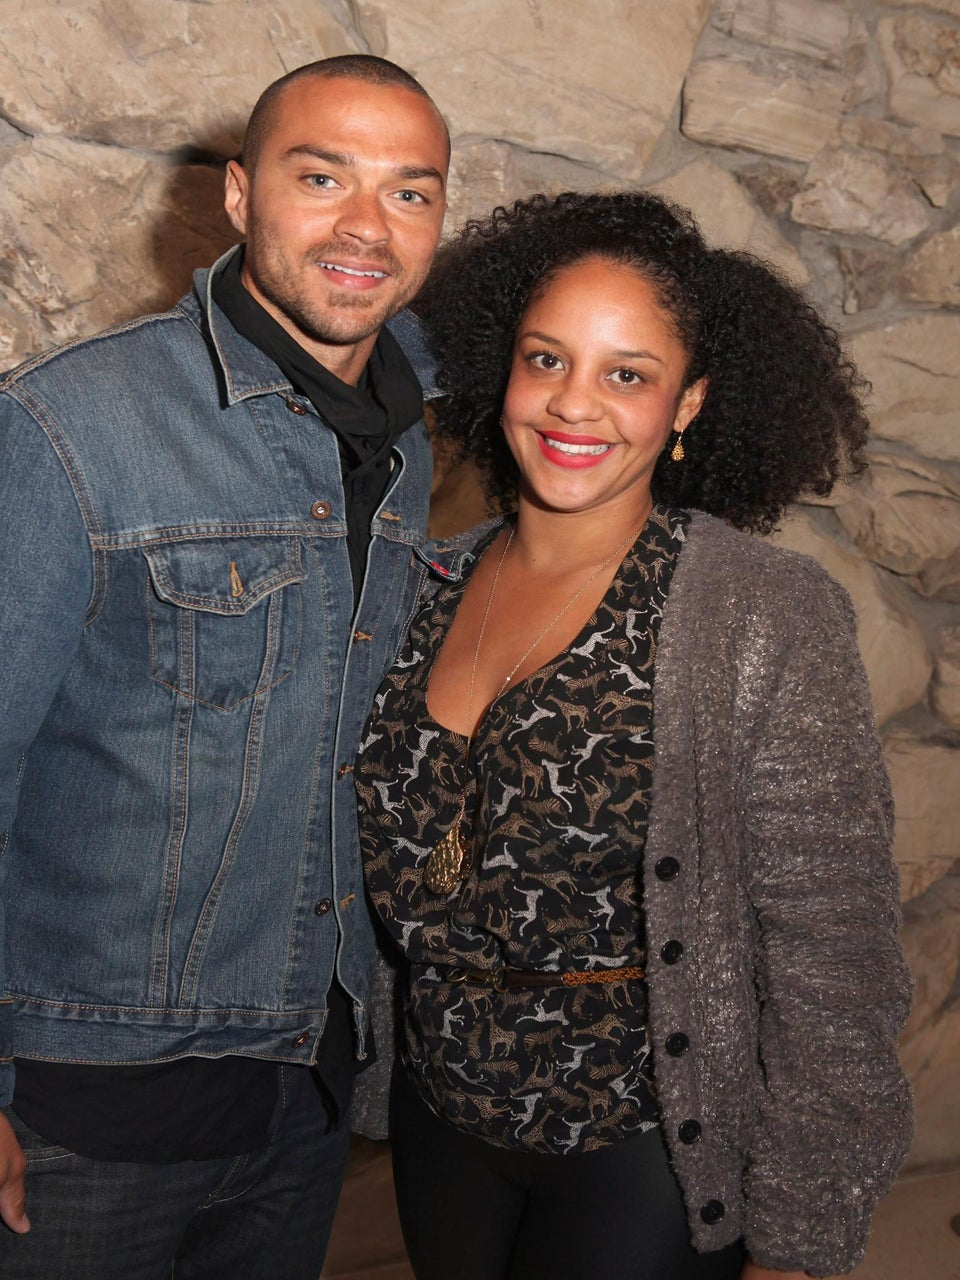 Jesse Williams and Wife Expecting First Child